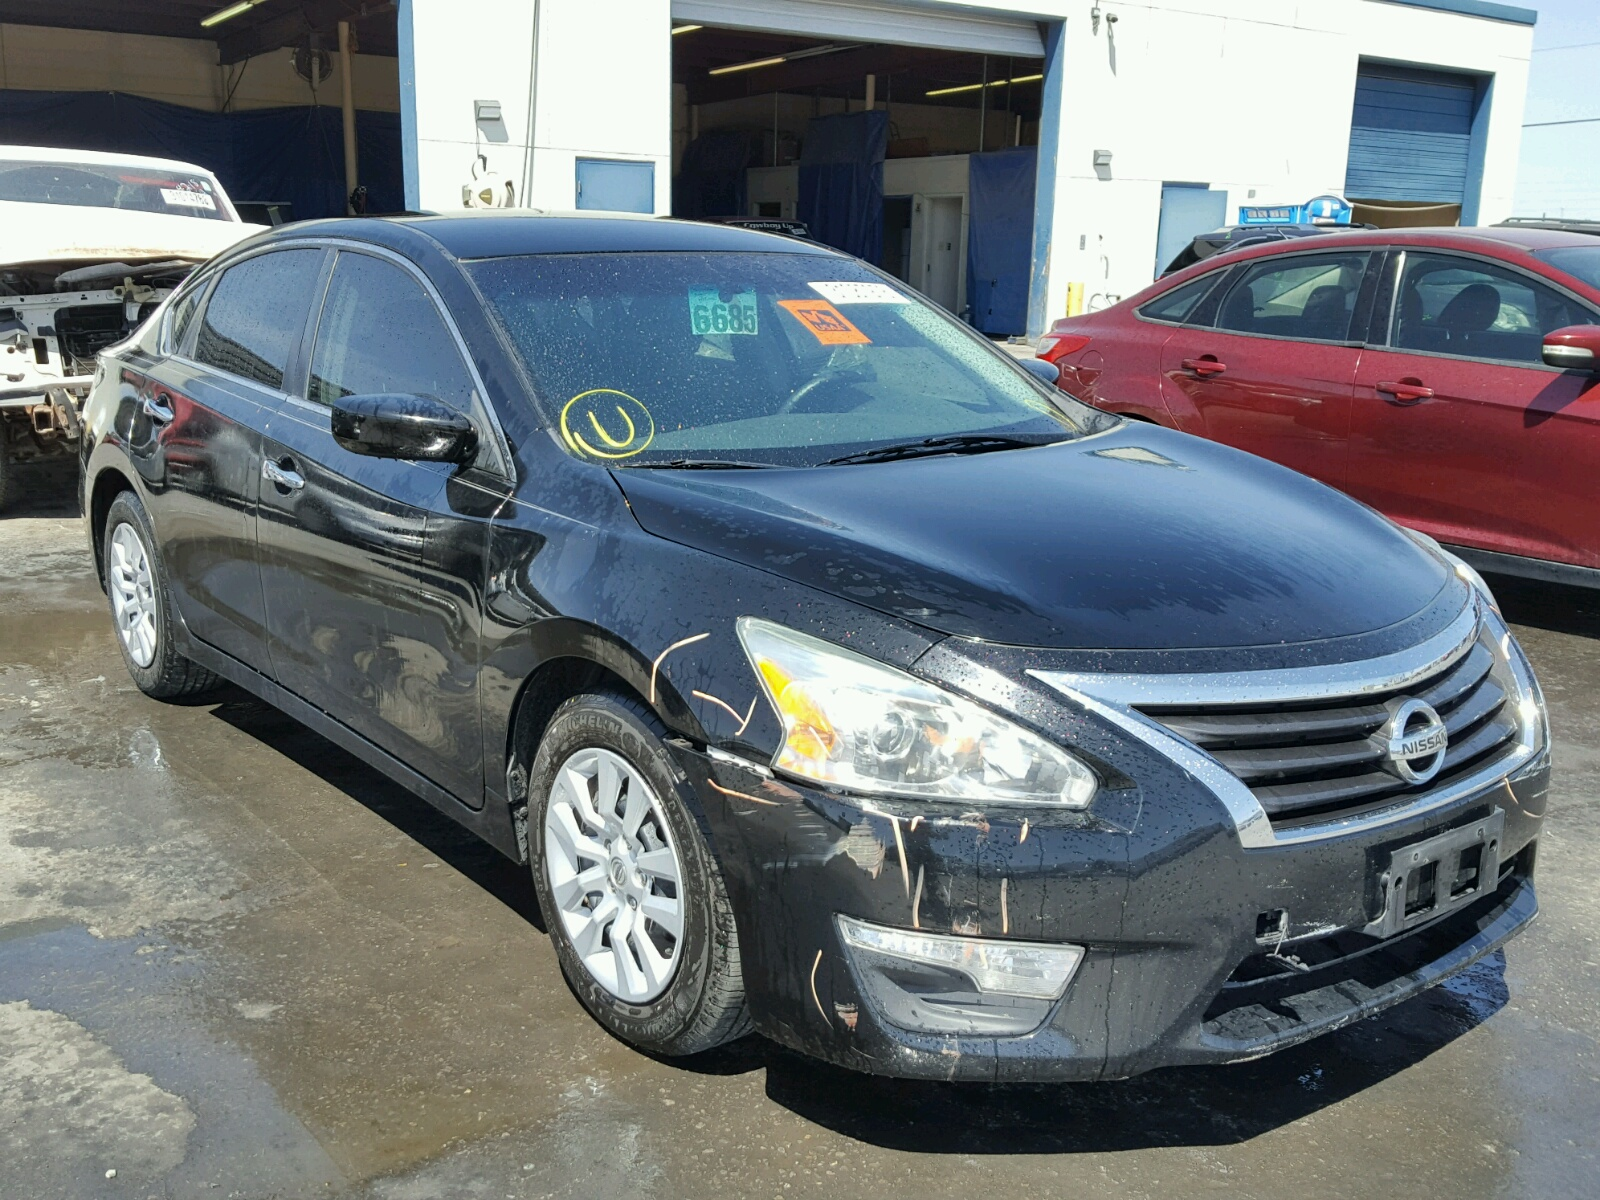 altima nissan int for with llc tan platinum perm pan sound no collection maxima welcome nav white roof clean sale loaded only